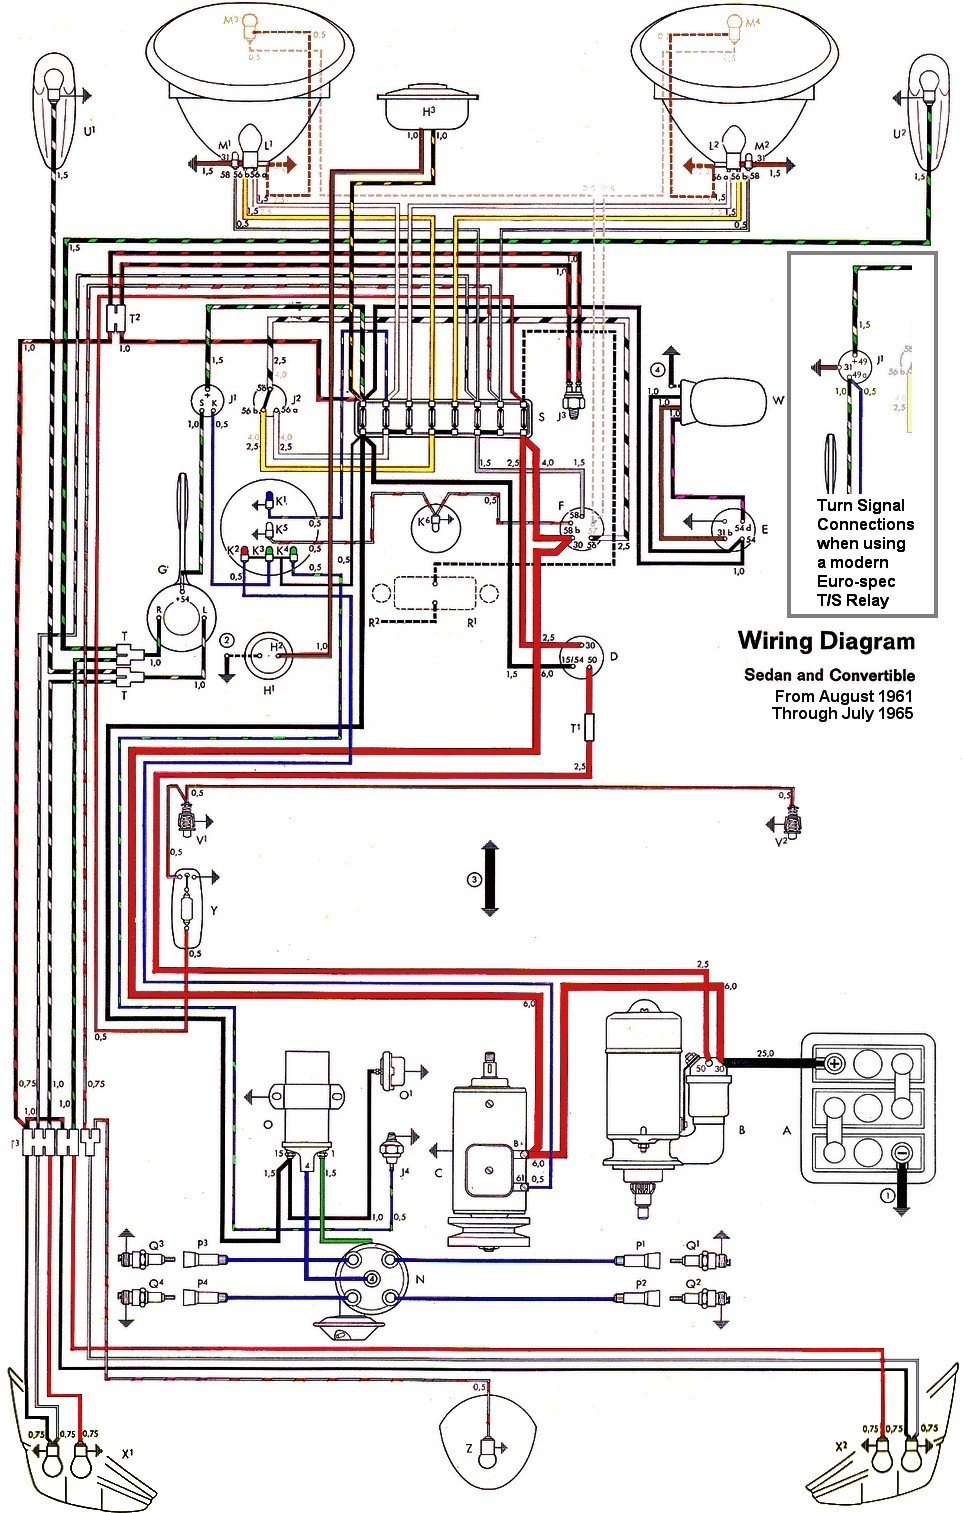 1973 vw wiring diagram enthusiast wiring diagrams u2022 rh bwpartnersautos com 1974 VW Thing Wiring Harness VW Voltage Regulator Wiring